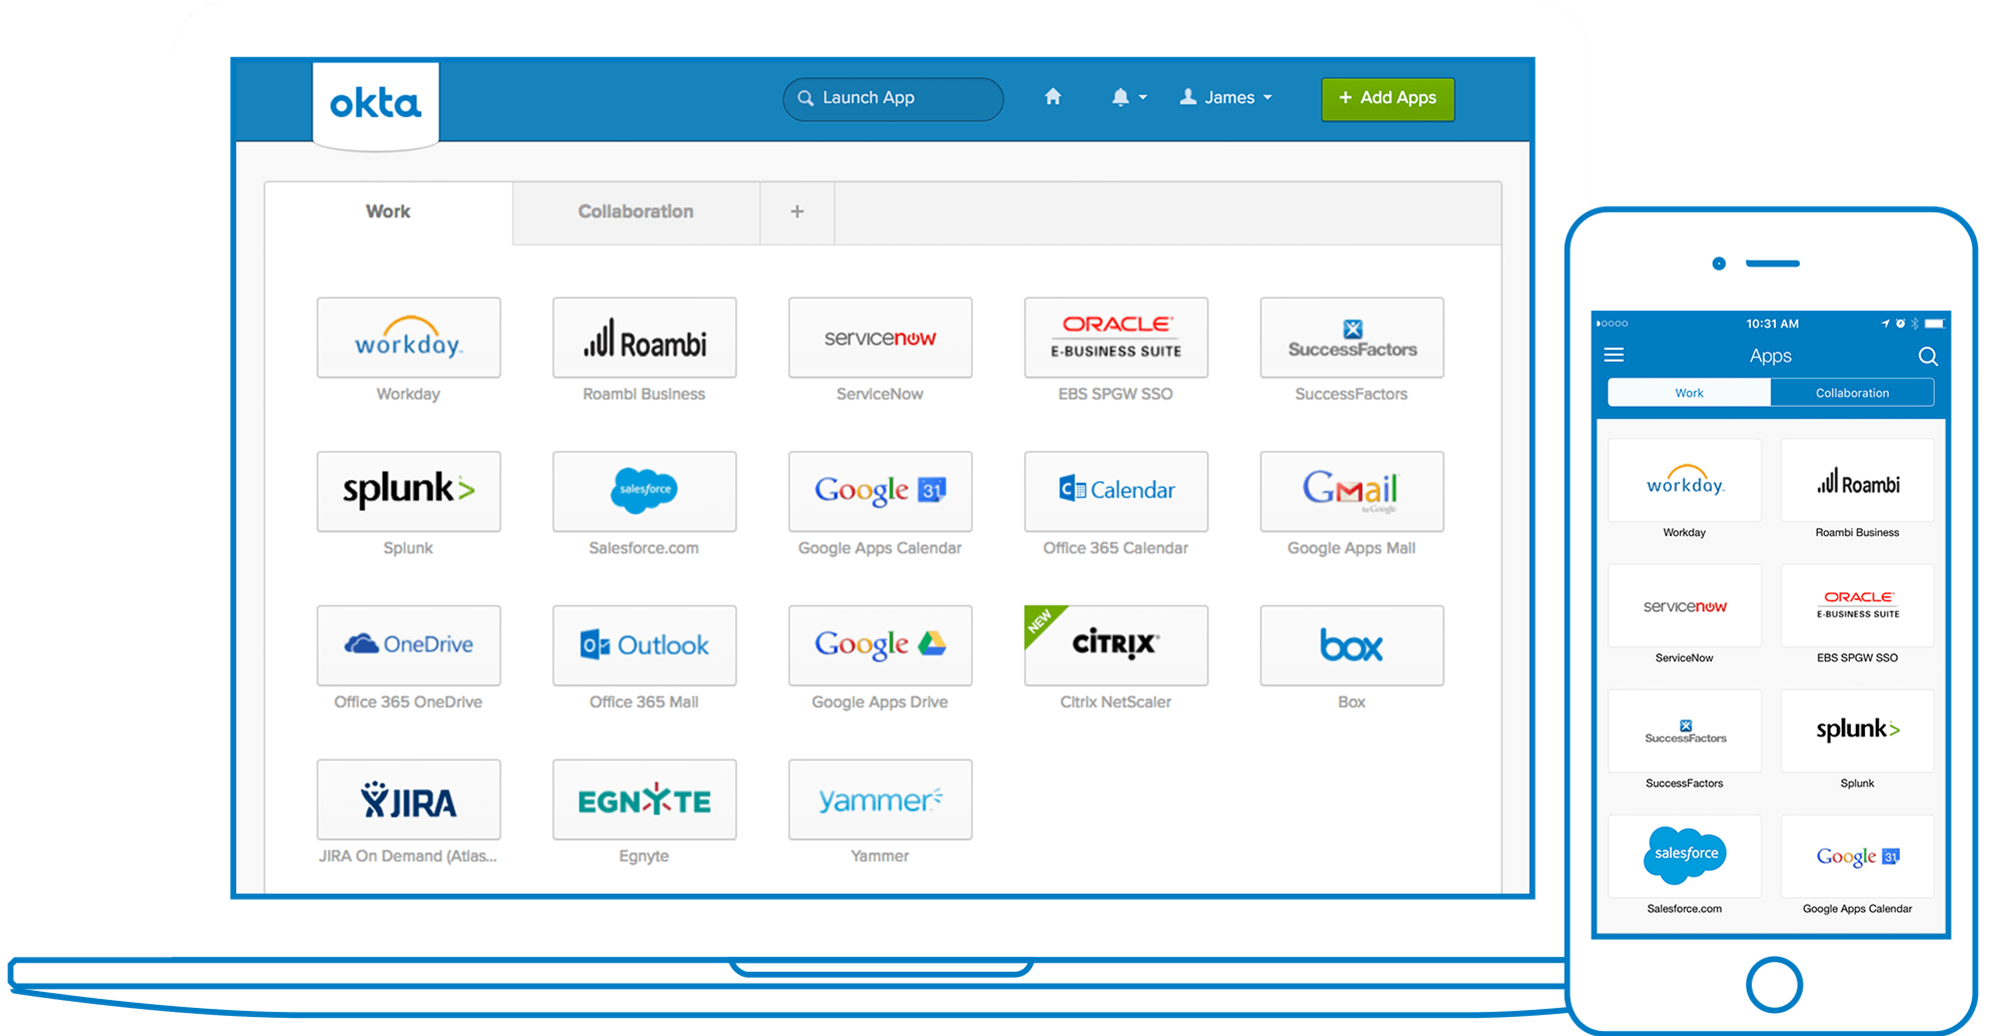 Okta offers one year free ID management